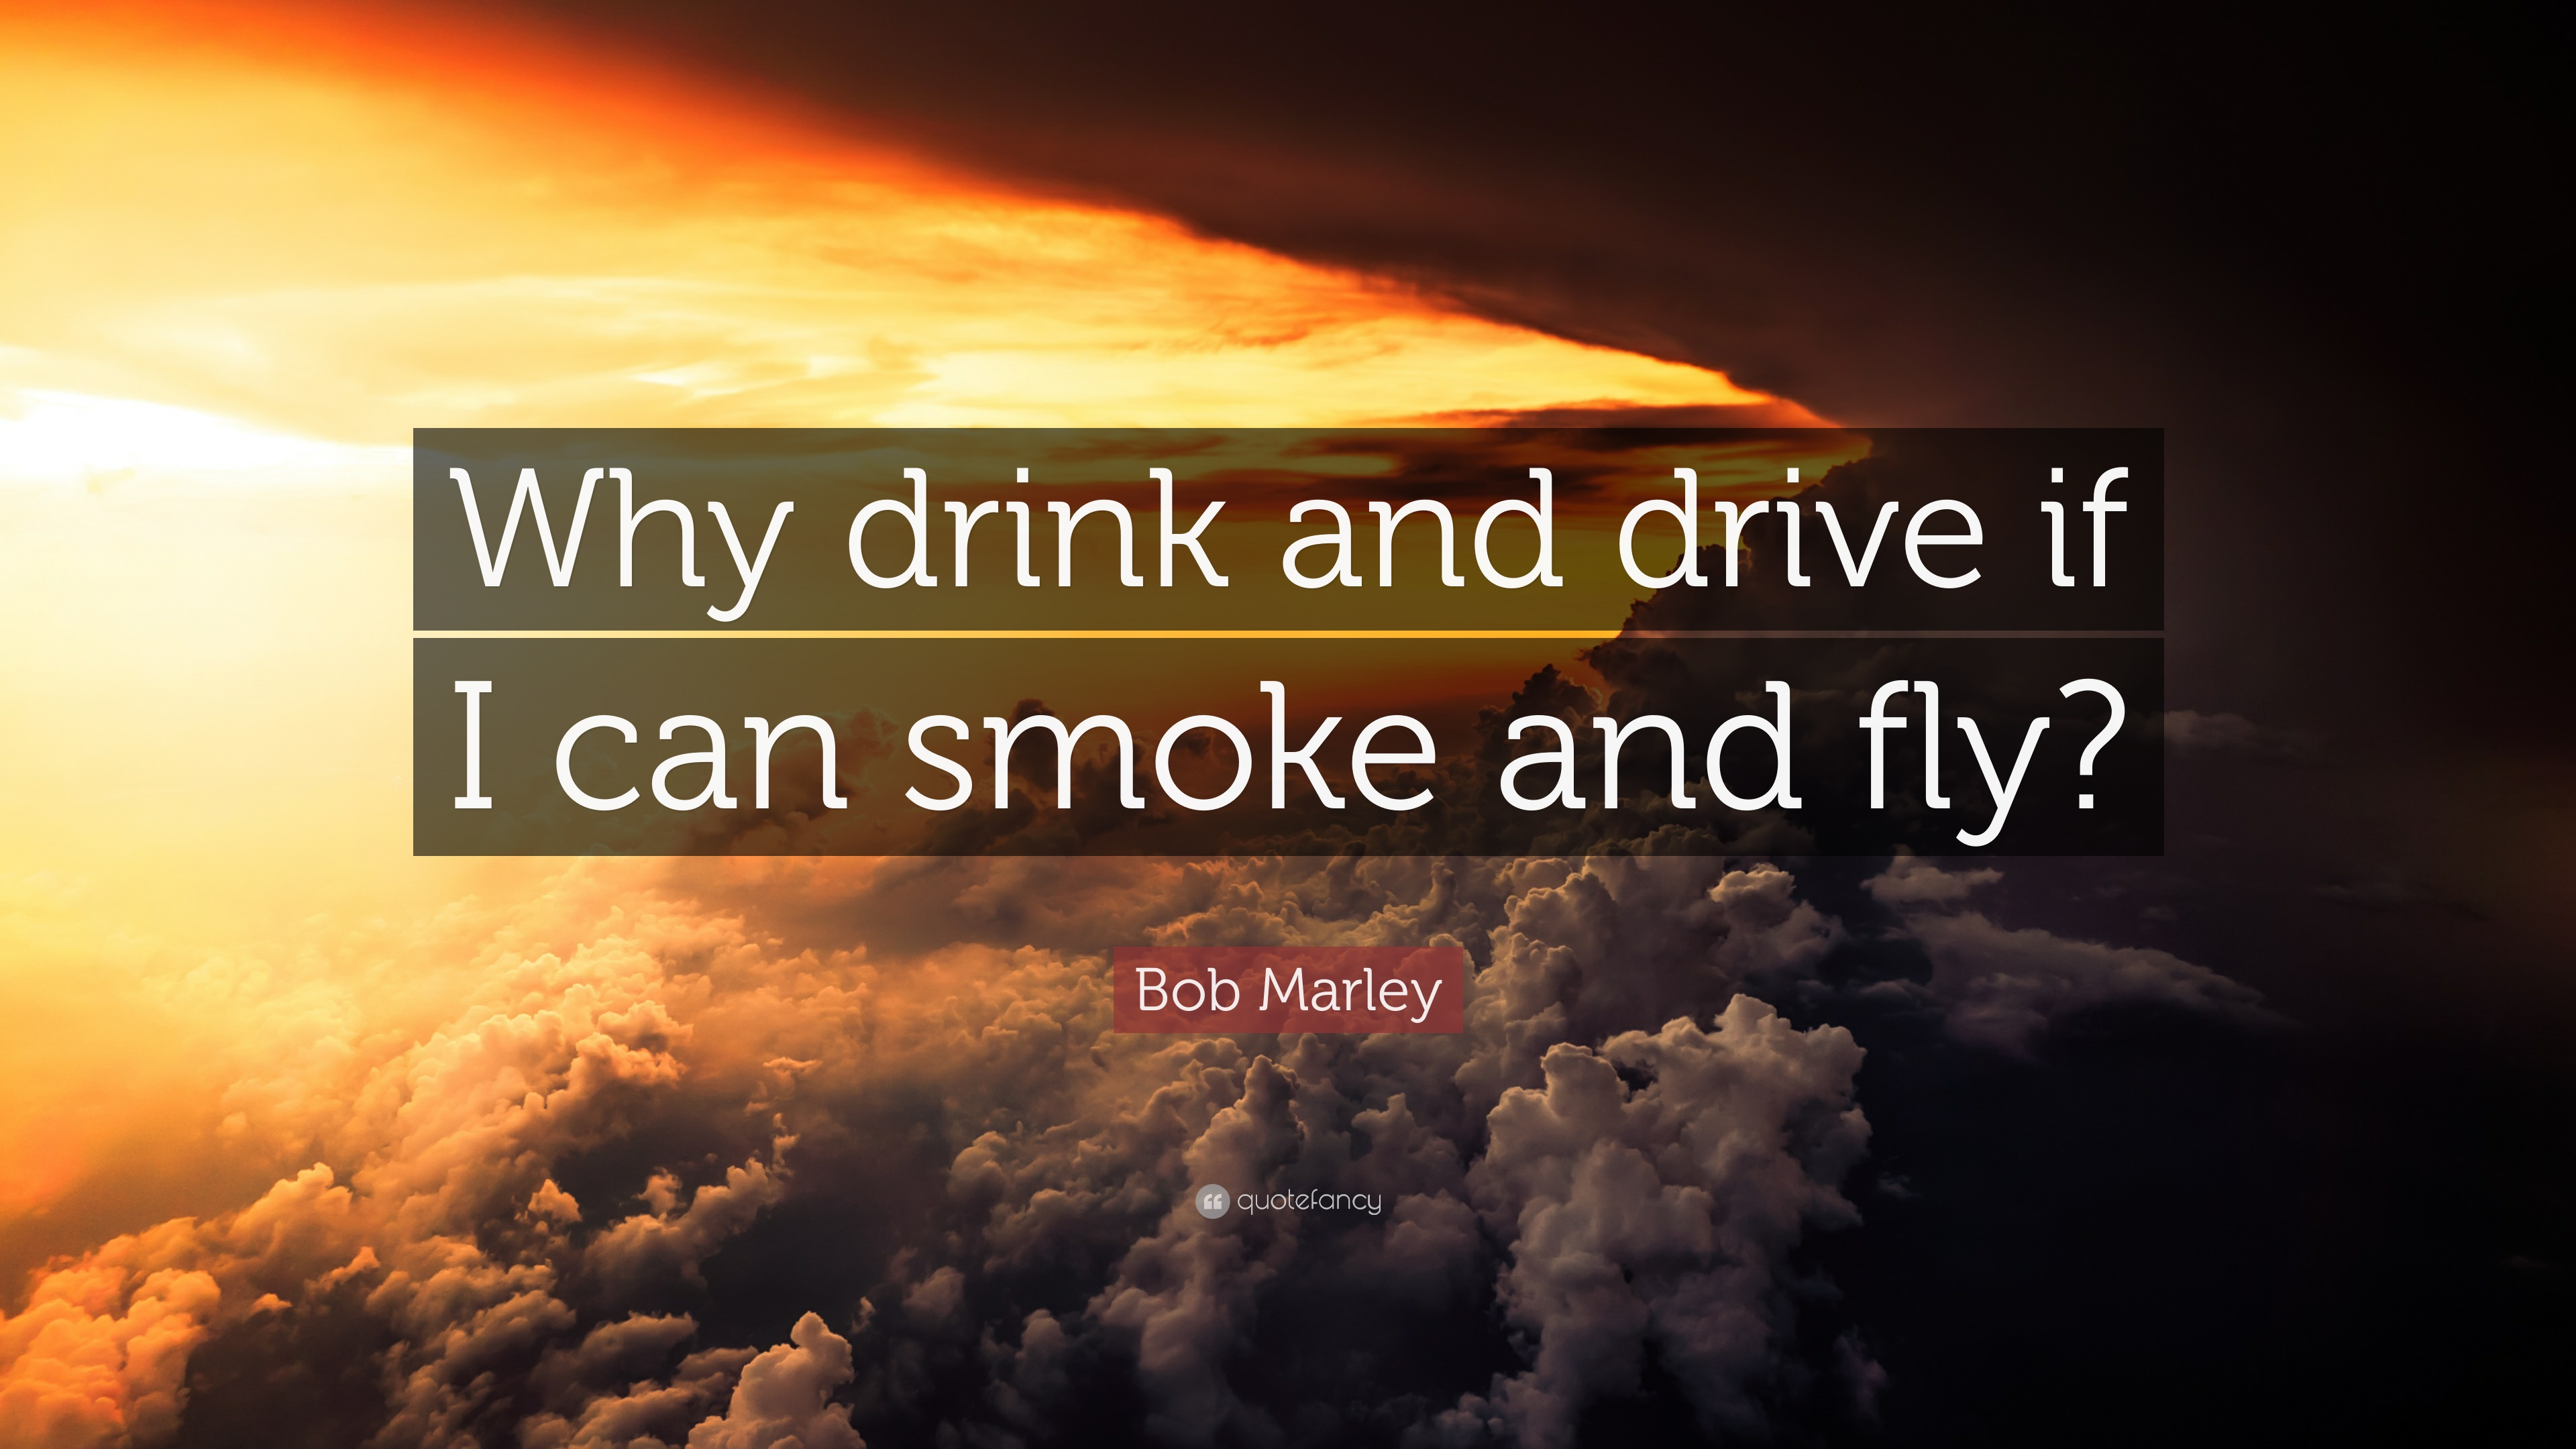 Quote Wallpaper Drive Bob Marley Quote Why Drink And Drive If I Can Smoke And